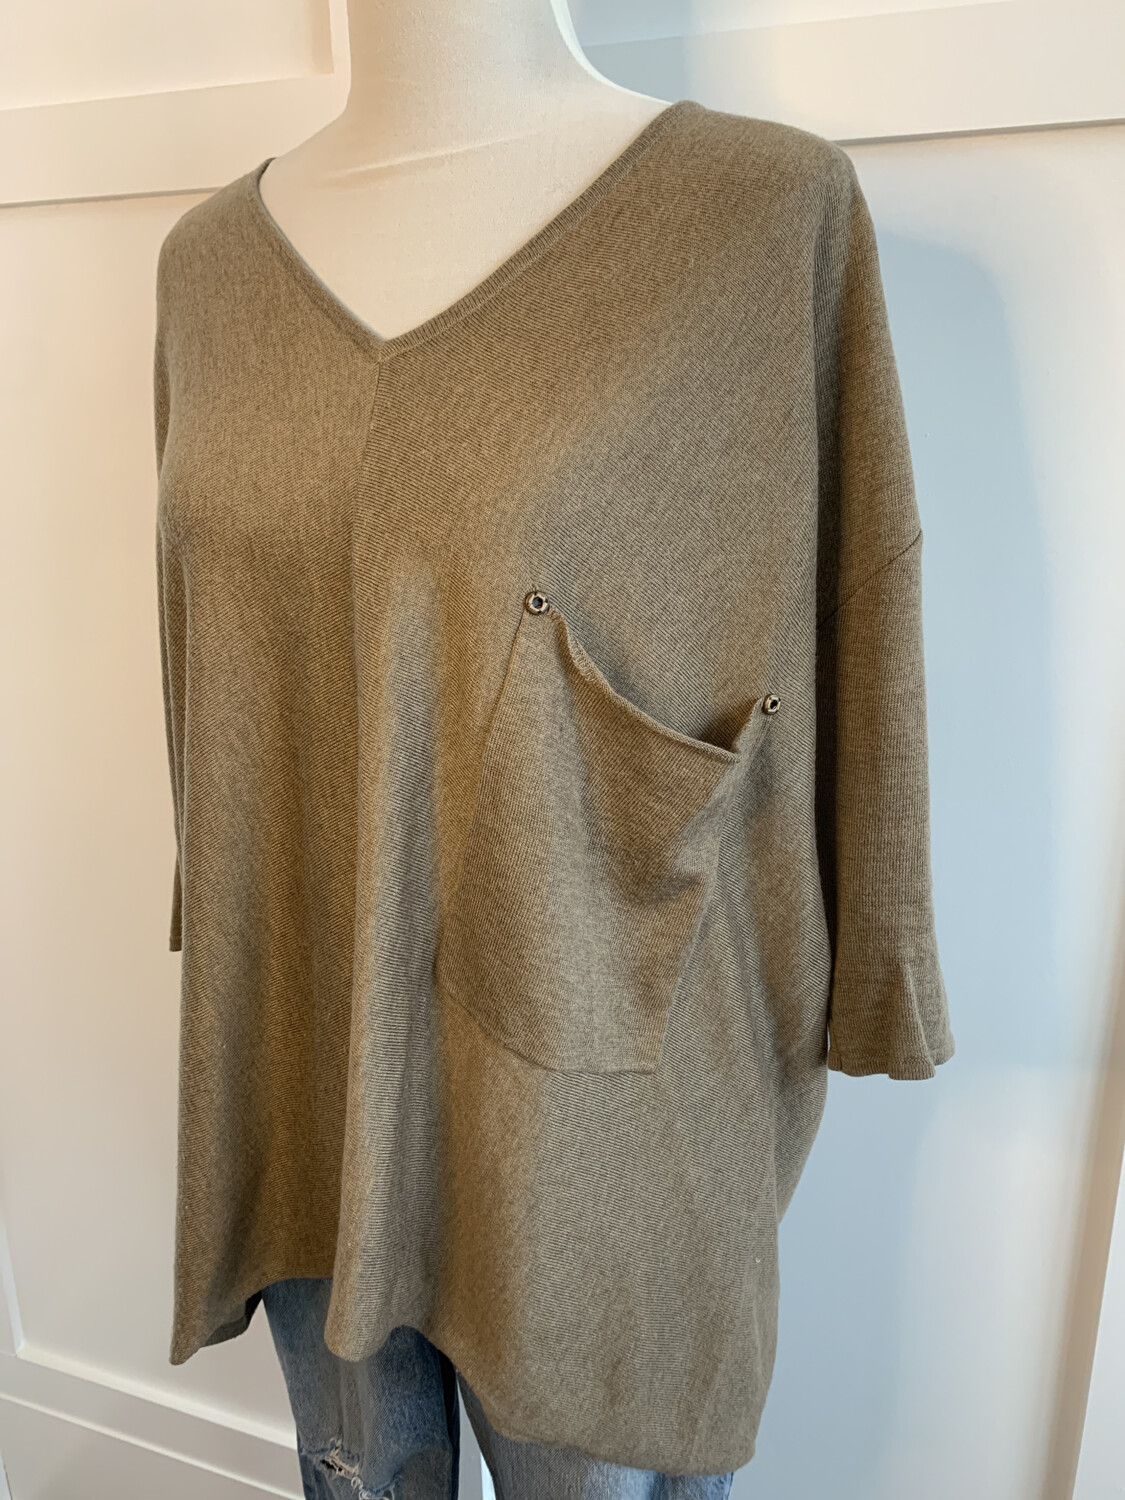 Kerisma Brown Oversized Pocket Vneck Top - M/L